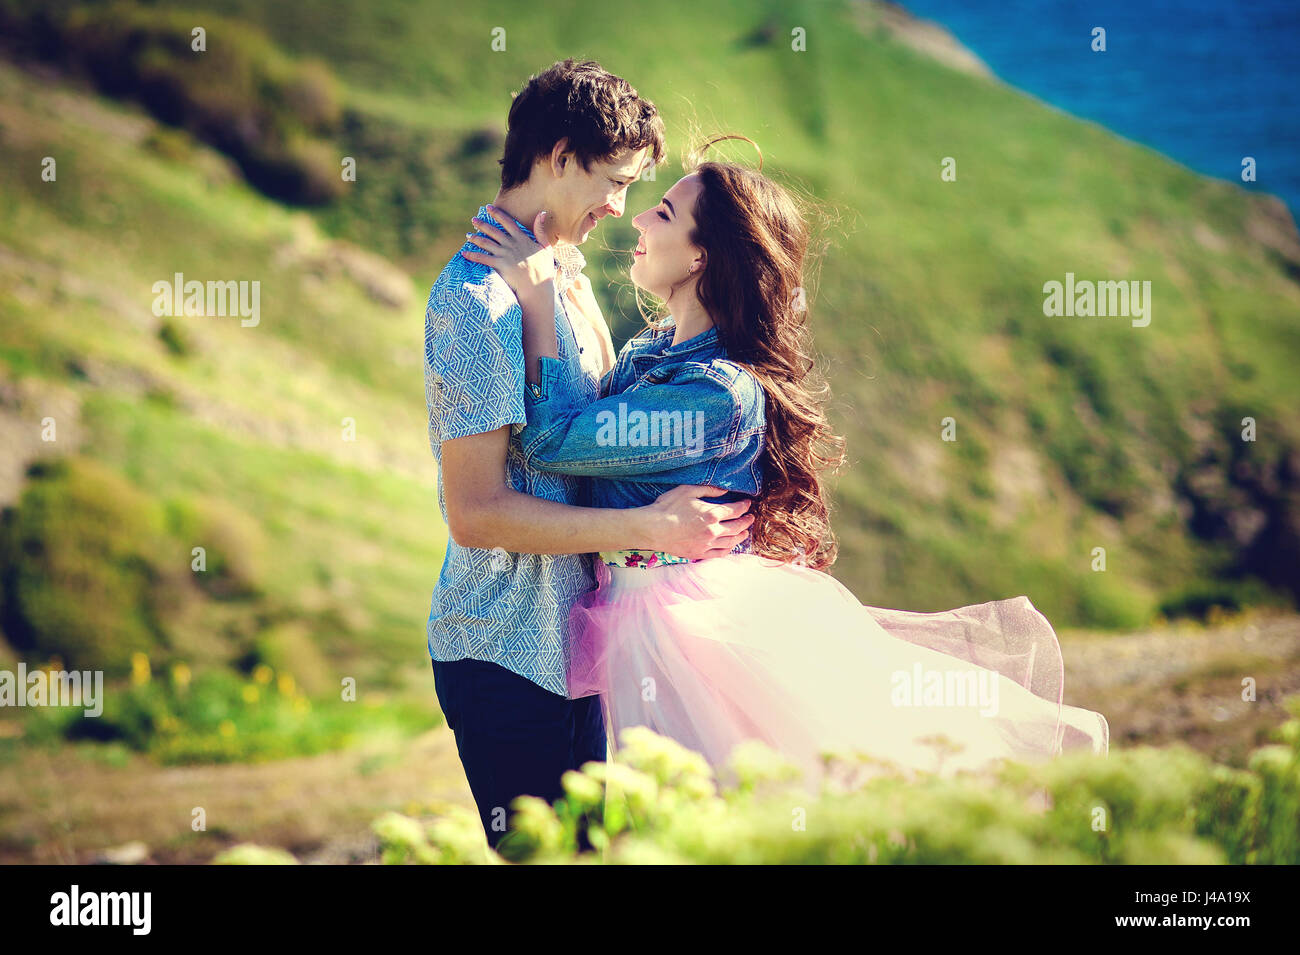 romantic couple embraces in the field. Carefree modern travel concept. - Stock Image